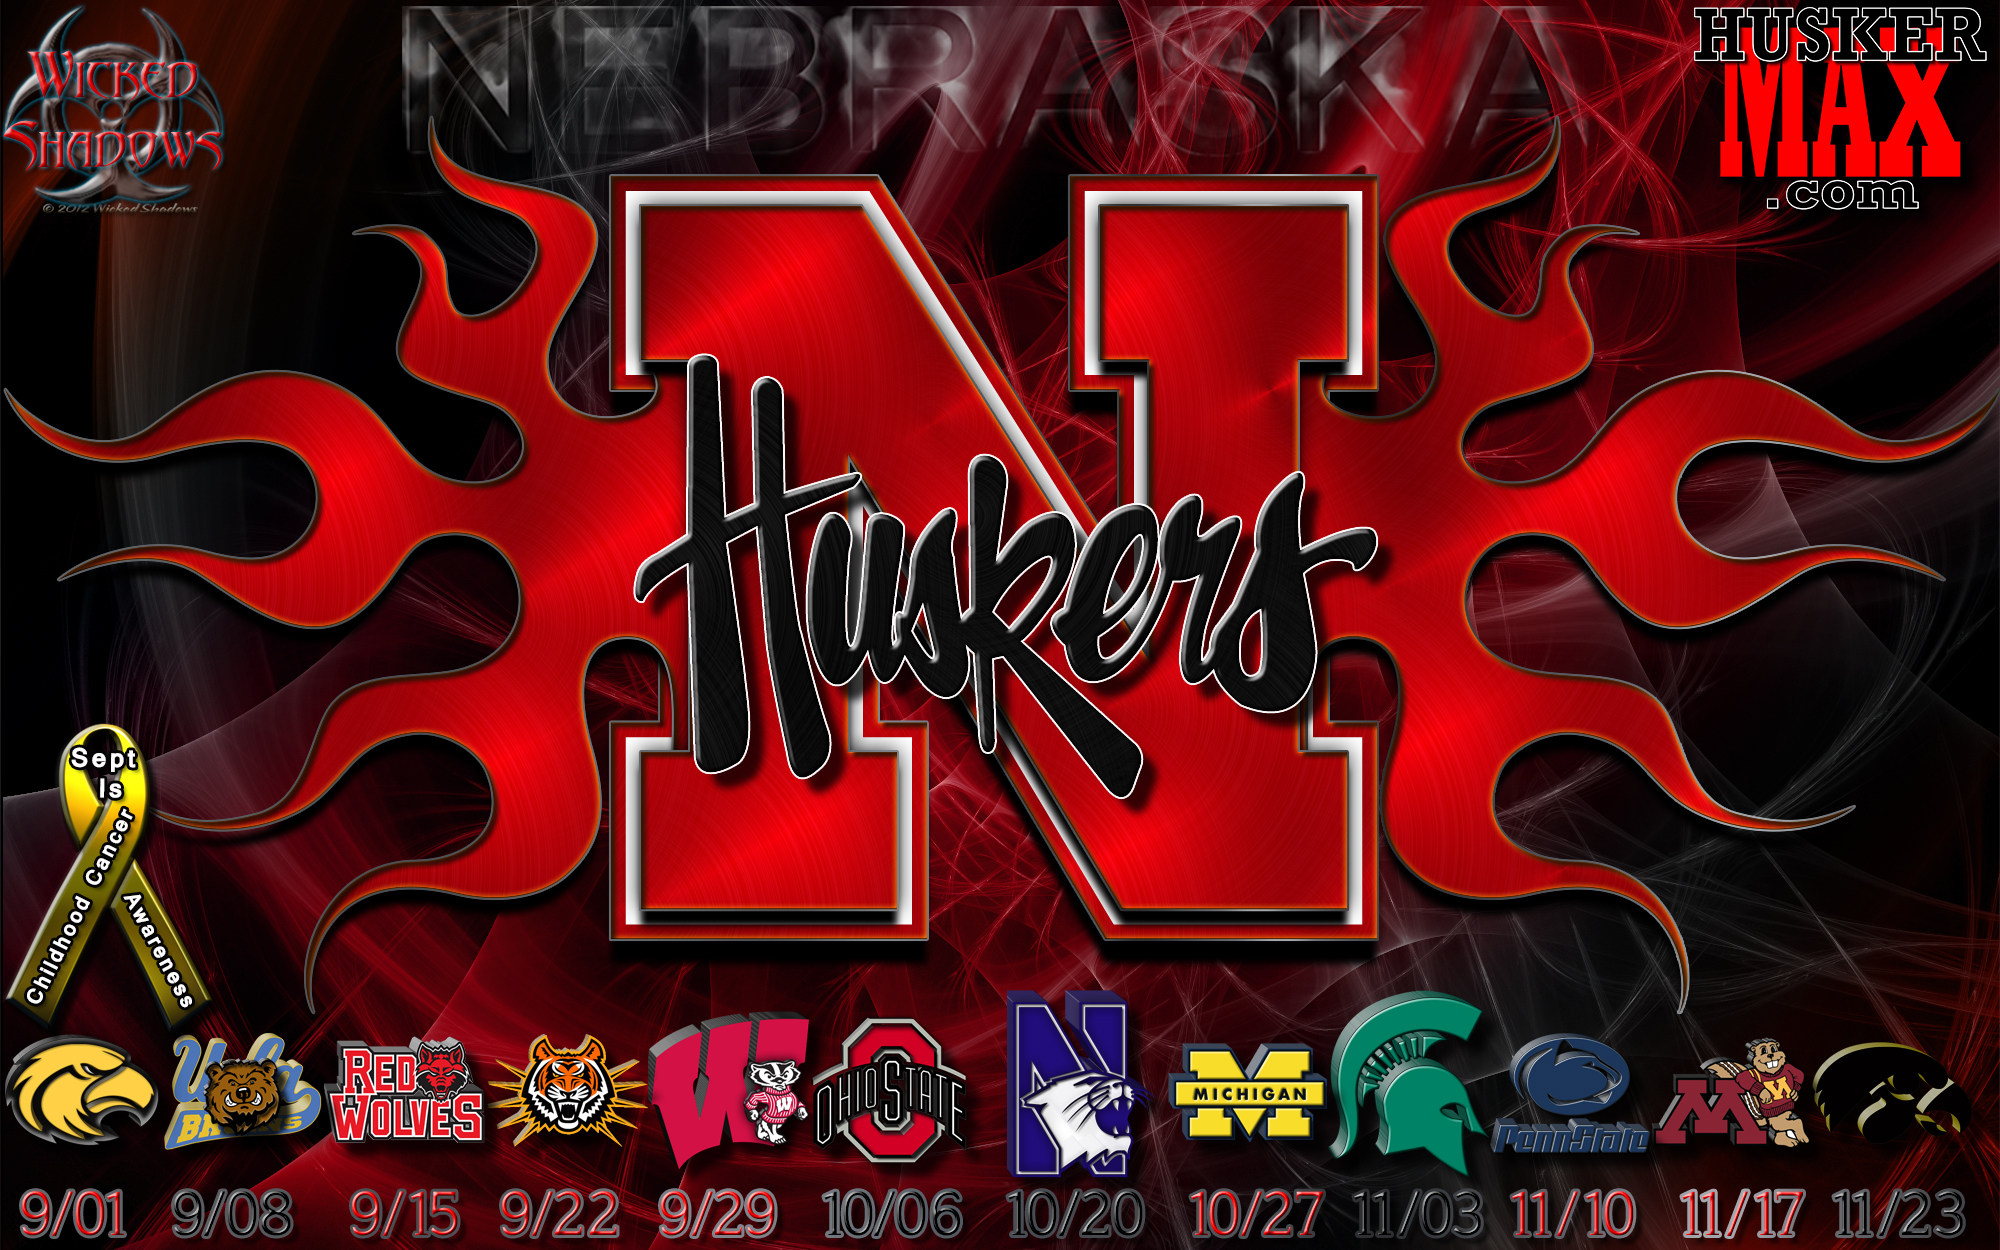 Nebraska Huskers Football Schedule